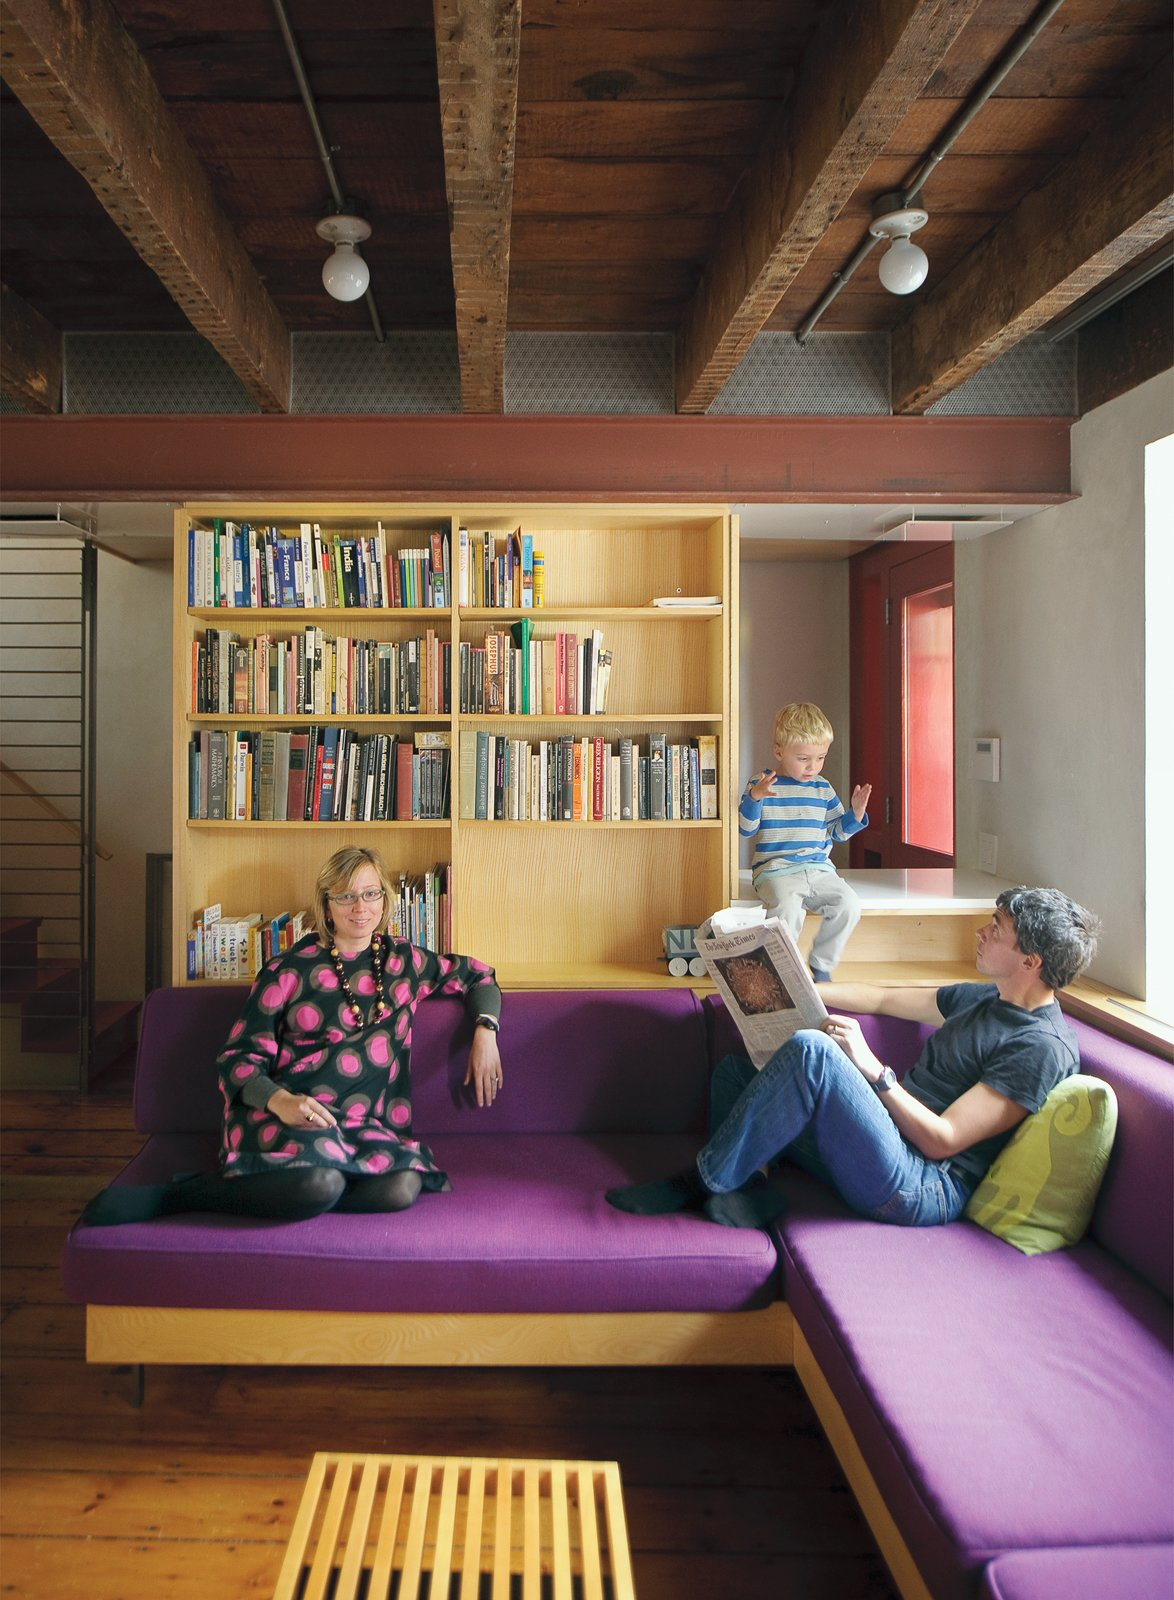 The exposed ceiling beams and inserted steel framing system are visible in the lower level, where Lange and Dixon relax with their son Paul.